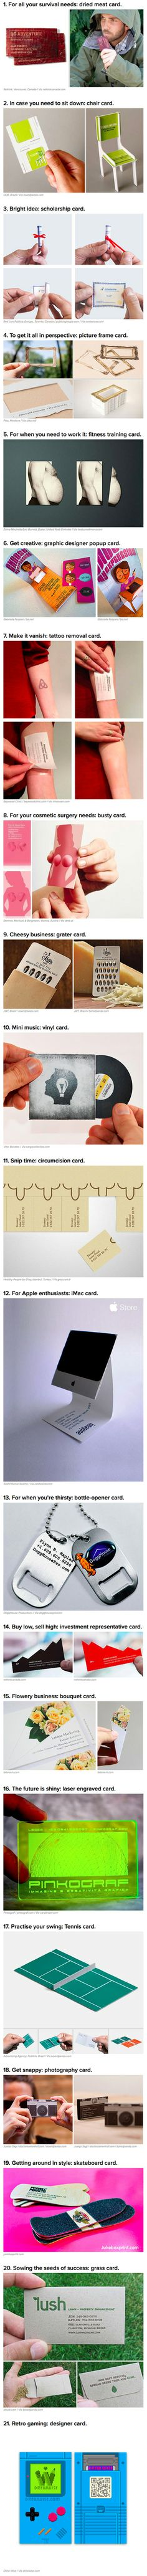 Want your business to get noticed? Here are 21 awesome business cards that will do just that.